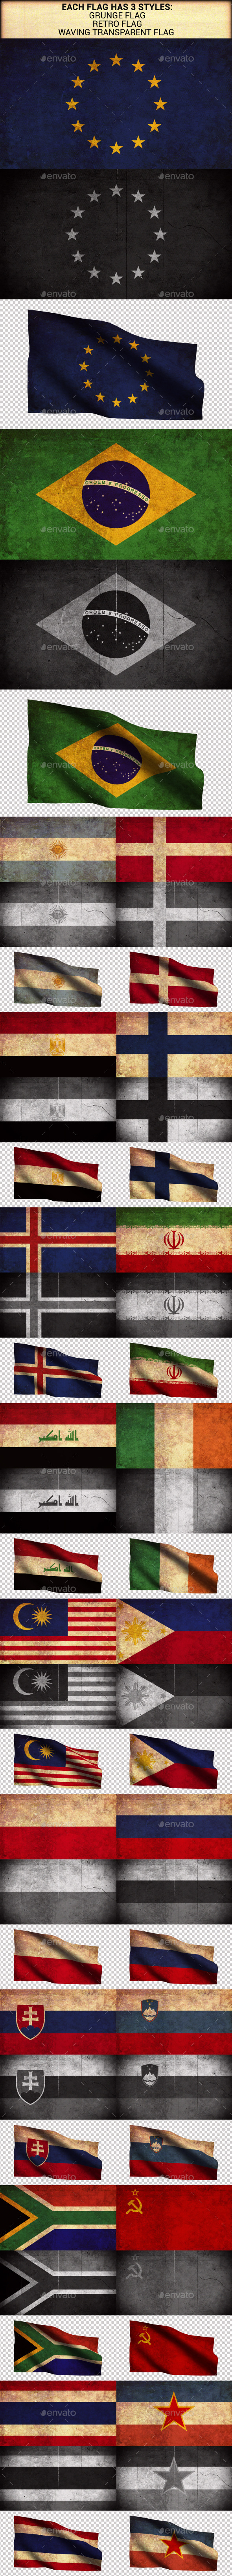 World Flags Grunge and Retro (Part 3) - Urban Backgrounds